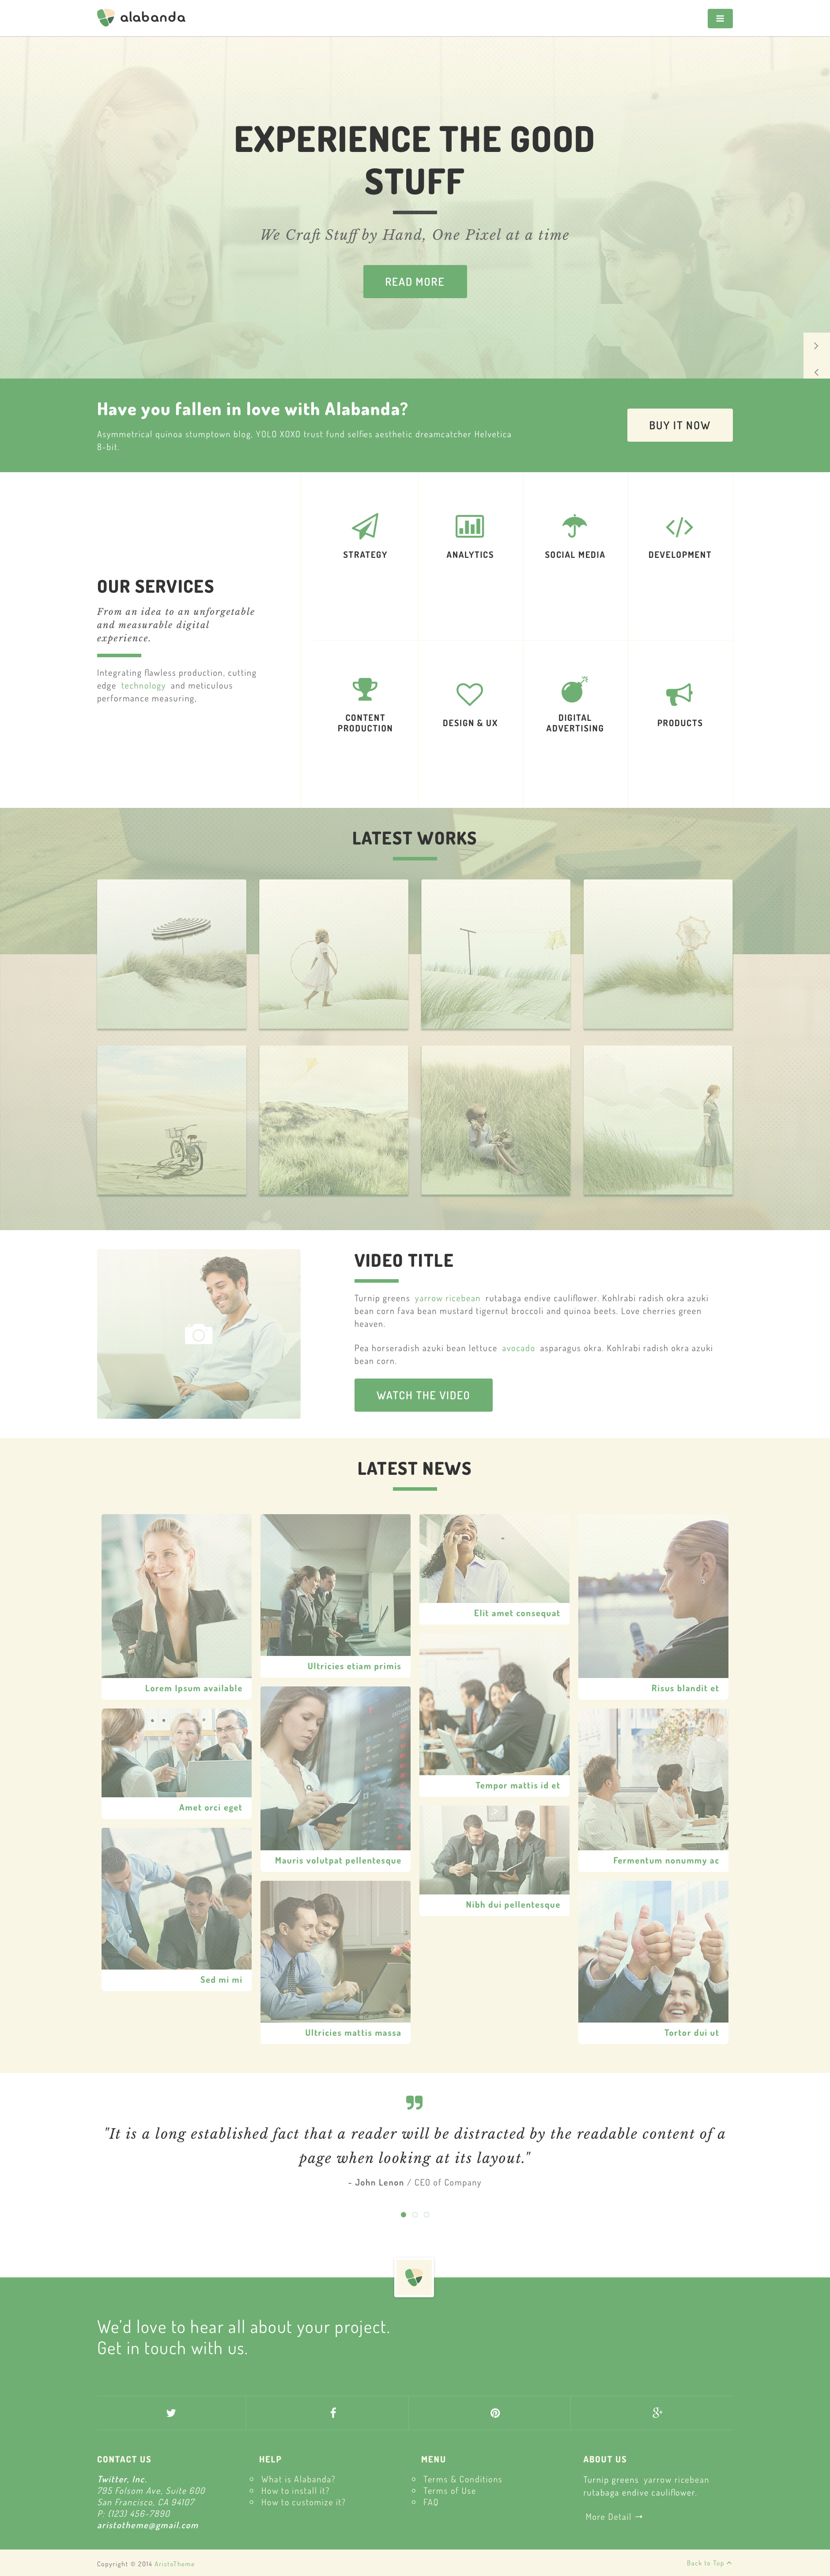 Alabanda is a clean free responsive HTML5 multipurpose website template. It can be ideal for professionals, freelancers or creative studios. This template is fully responsive, retina ready and comes with 5 pages.